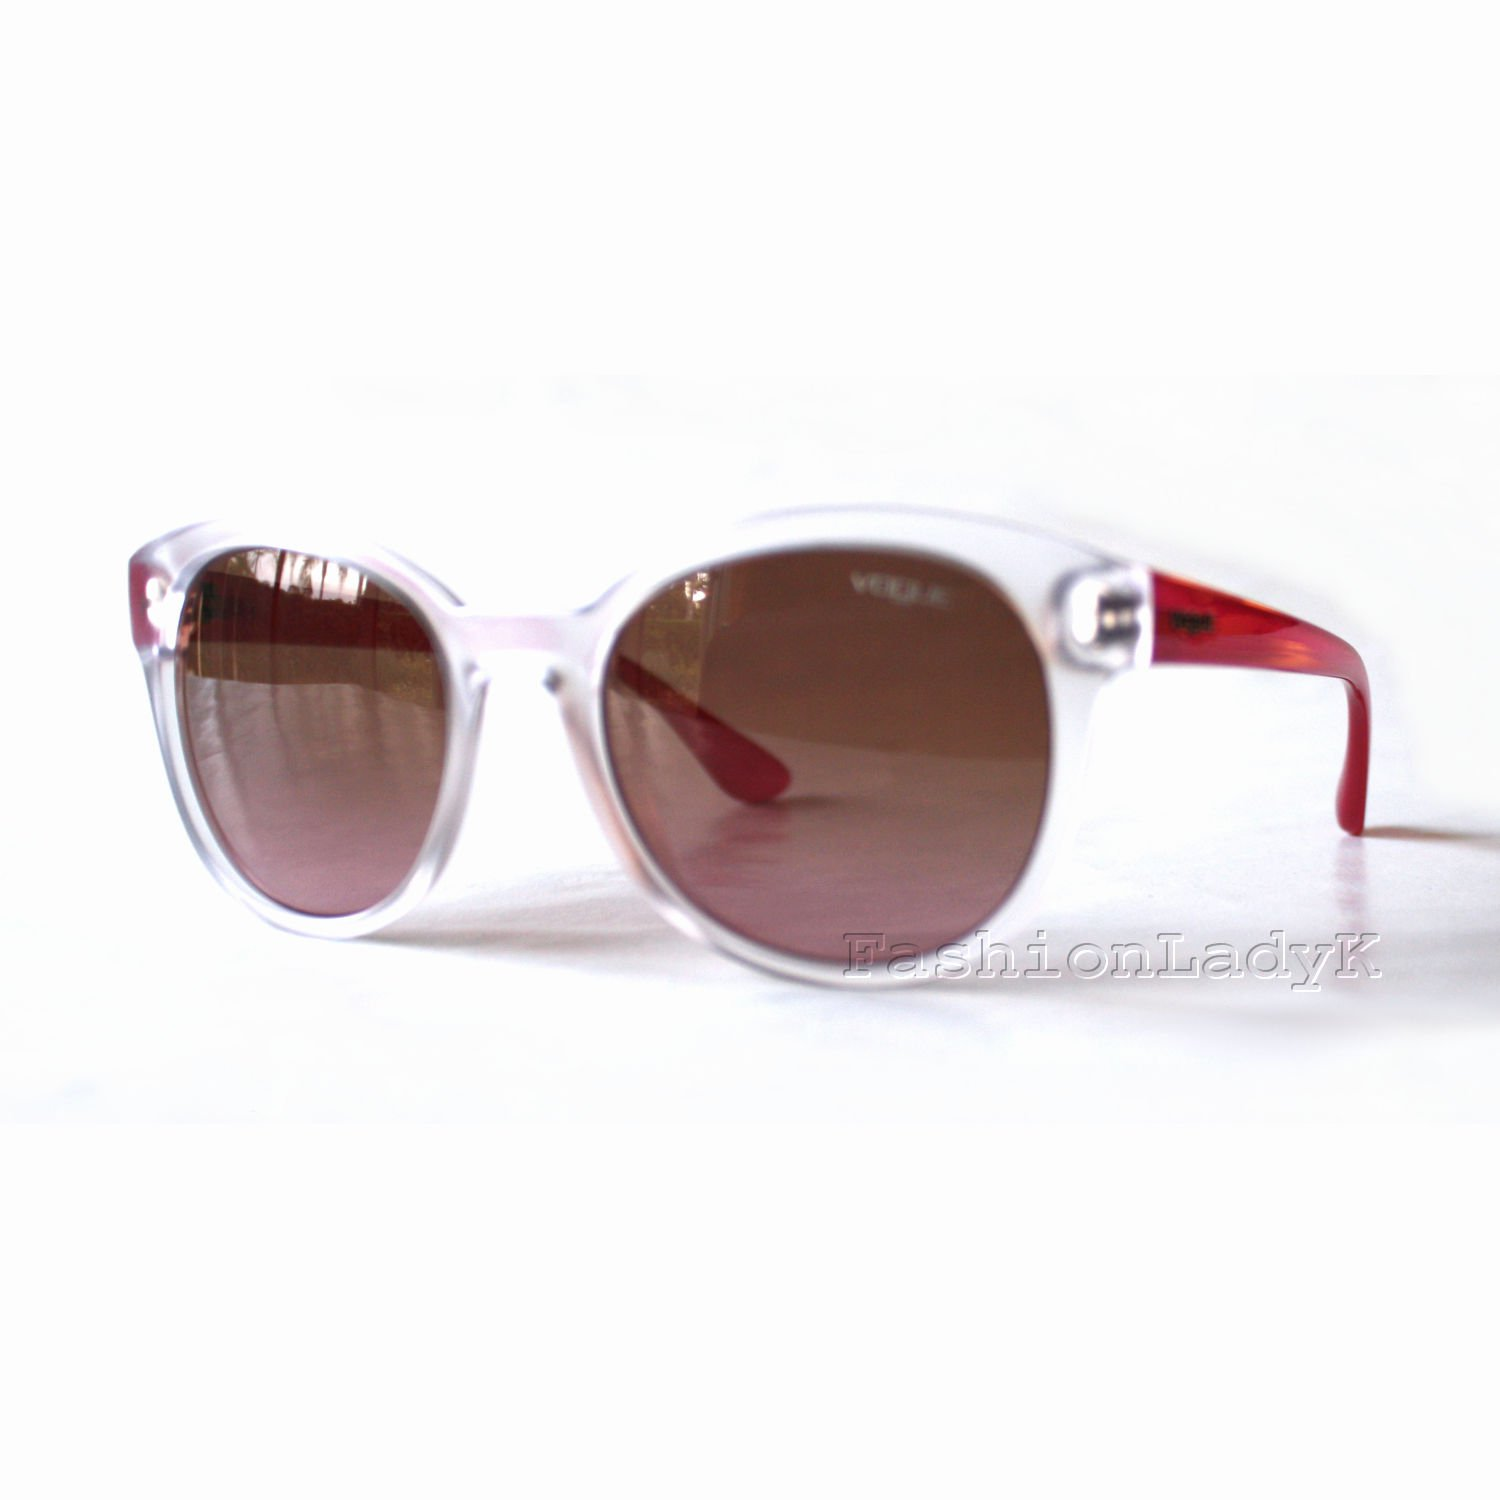 VOGUE Women Pink Sunglasses VO2795-S W745-14 New w/ Case